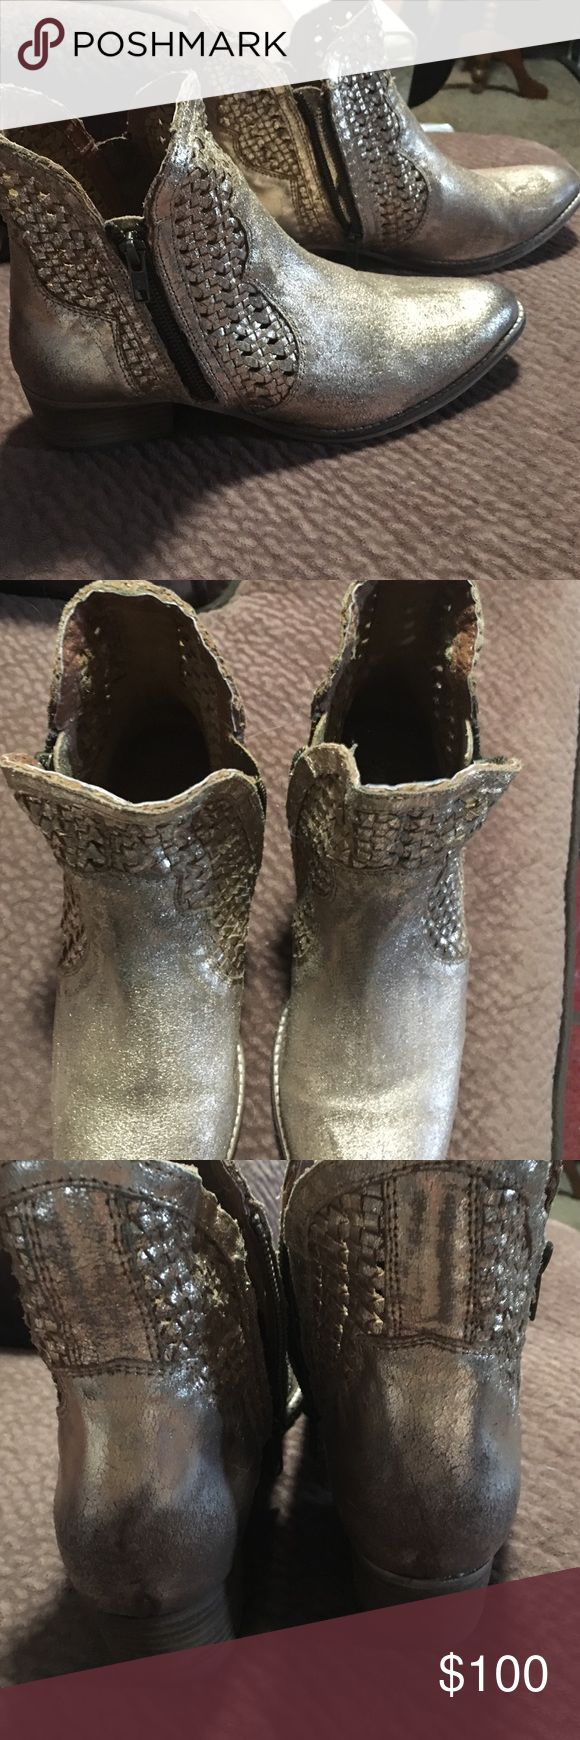 Gold Seychelles! Hard to find! Size 10 HARD TO FIND!  Brand new gold Seychelles size 10! Fit a 9.5 ! These are beautiful wish they fit me!. Open to offers but low balls with be ignored ! Seychelles Shoes Ankle Boots & Booties